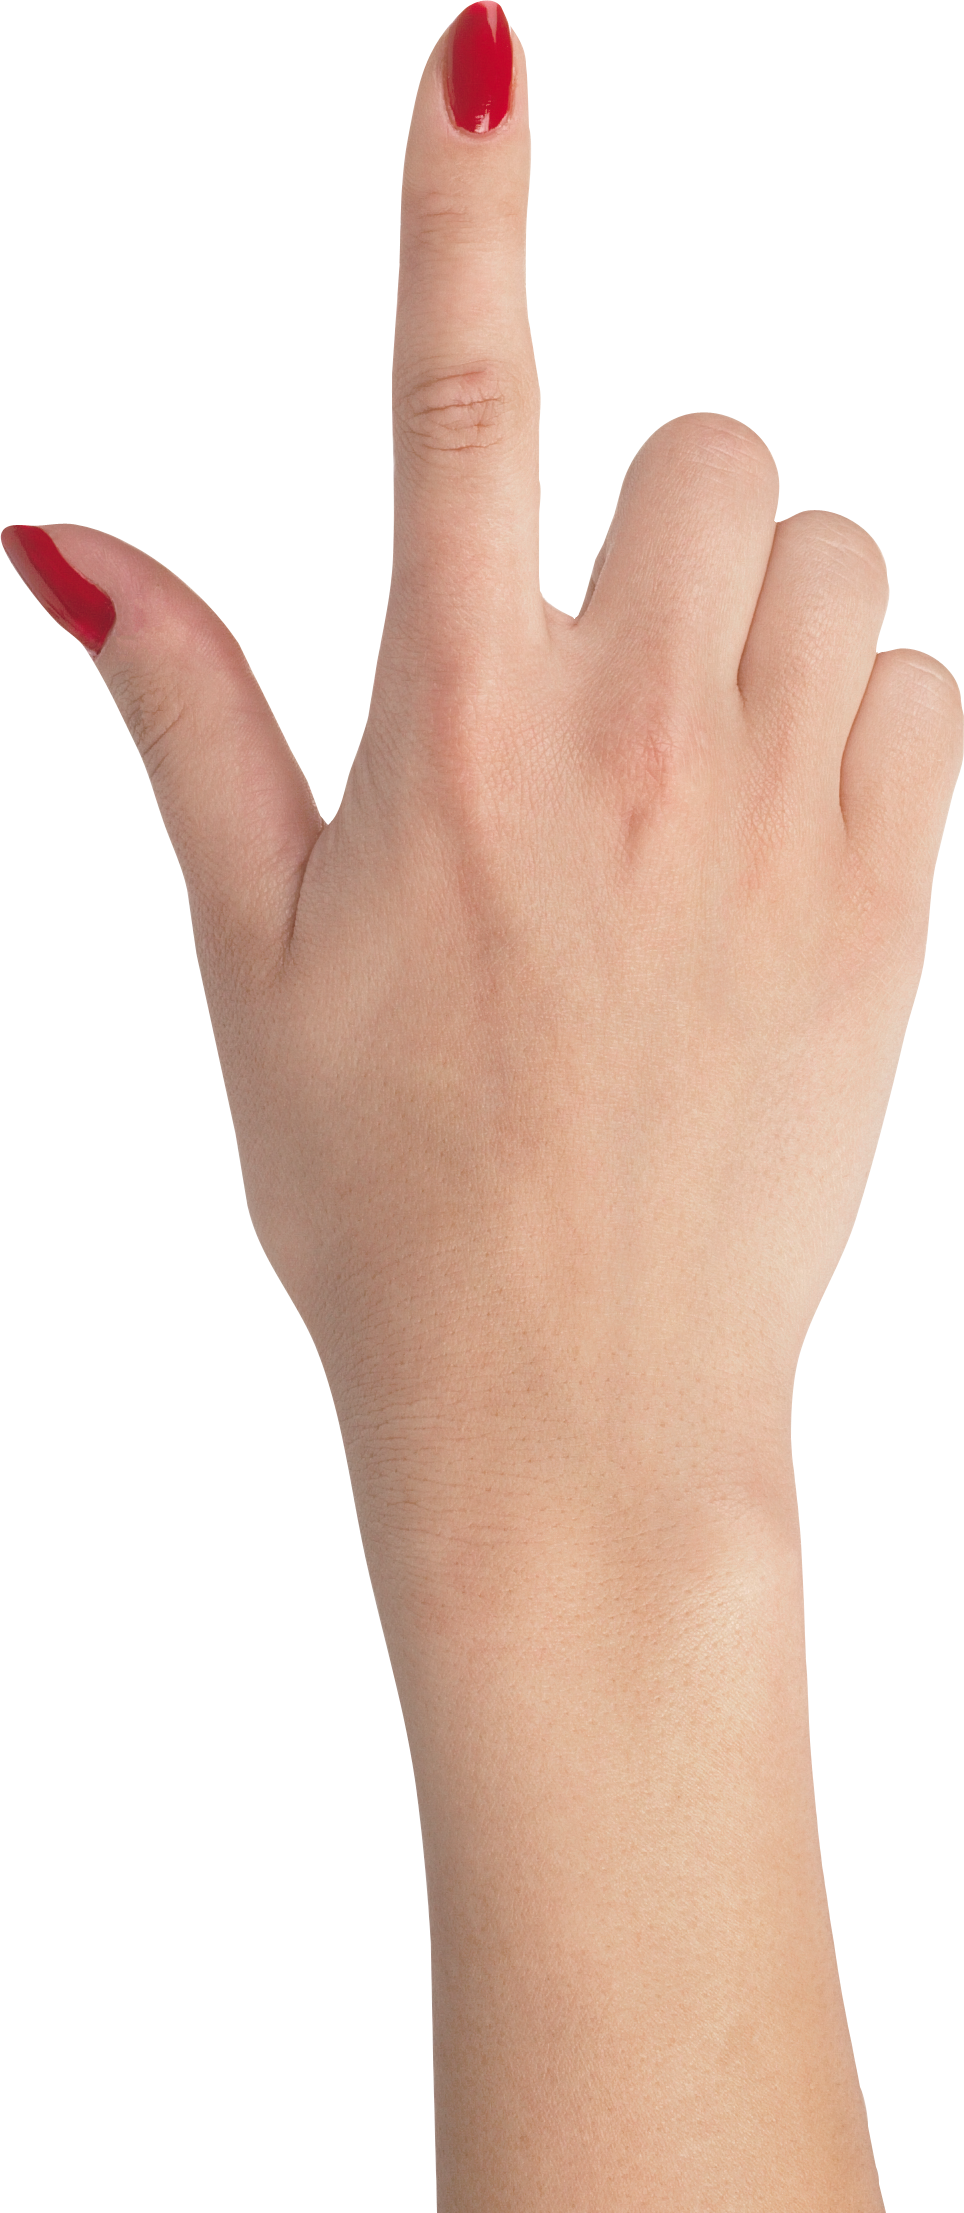 Female hands png. Hand pointing up real